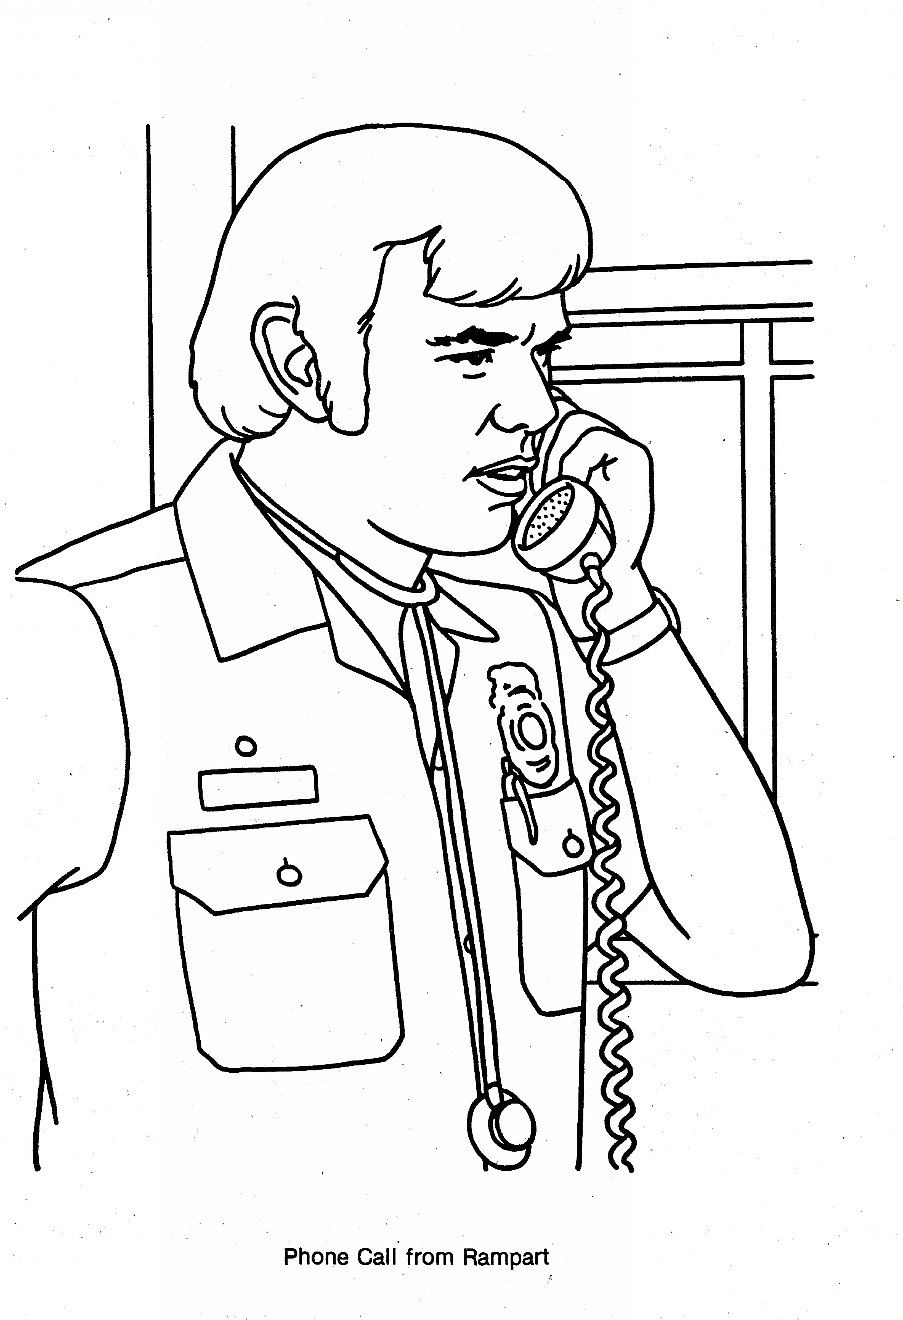 Emergency TV Show Coloring Pages | Emergency! TV Show | Pinterest | TVs